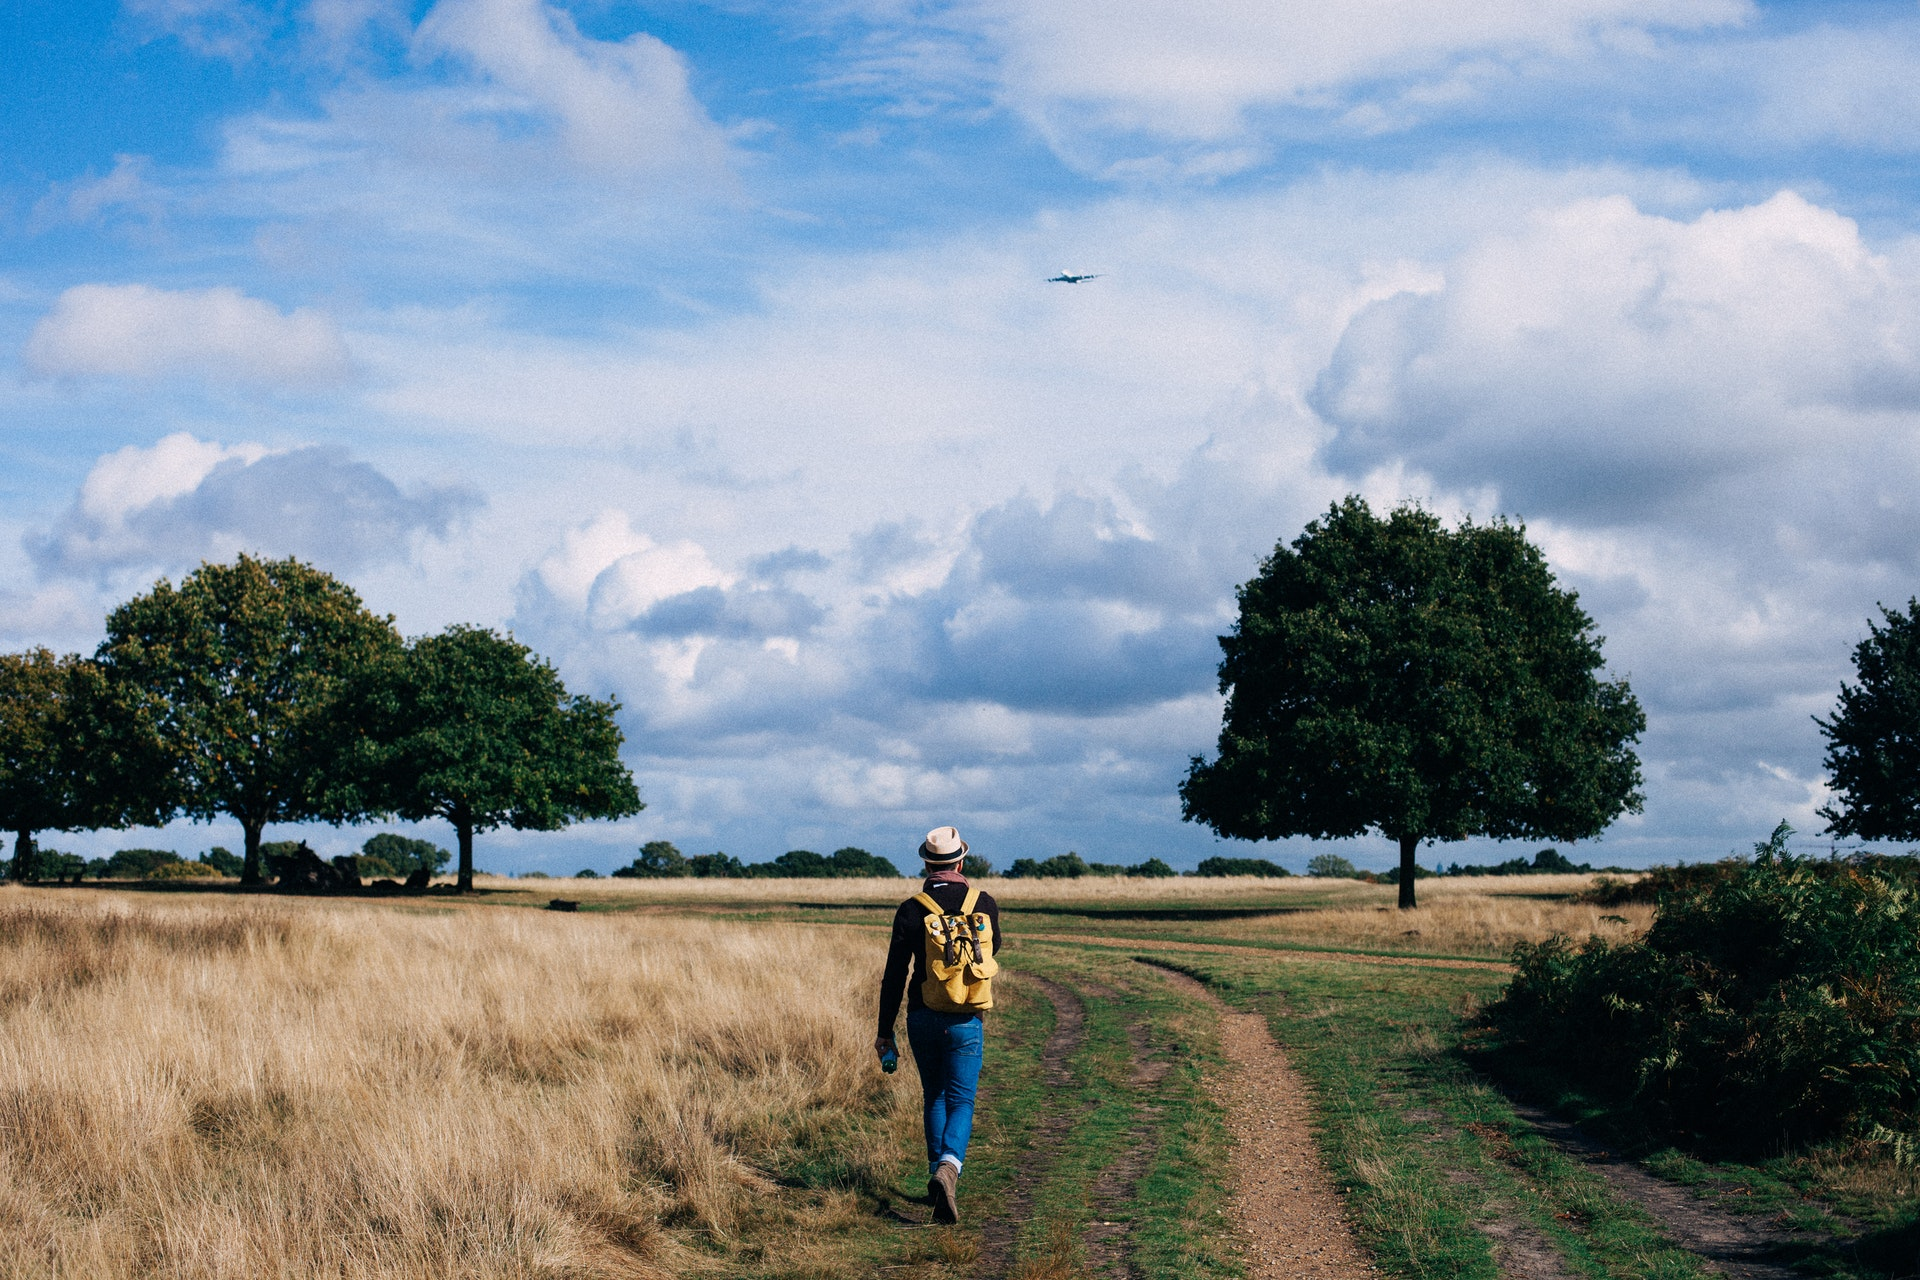 Everything You Need to Know About Walking in a Humble Way